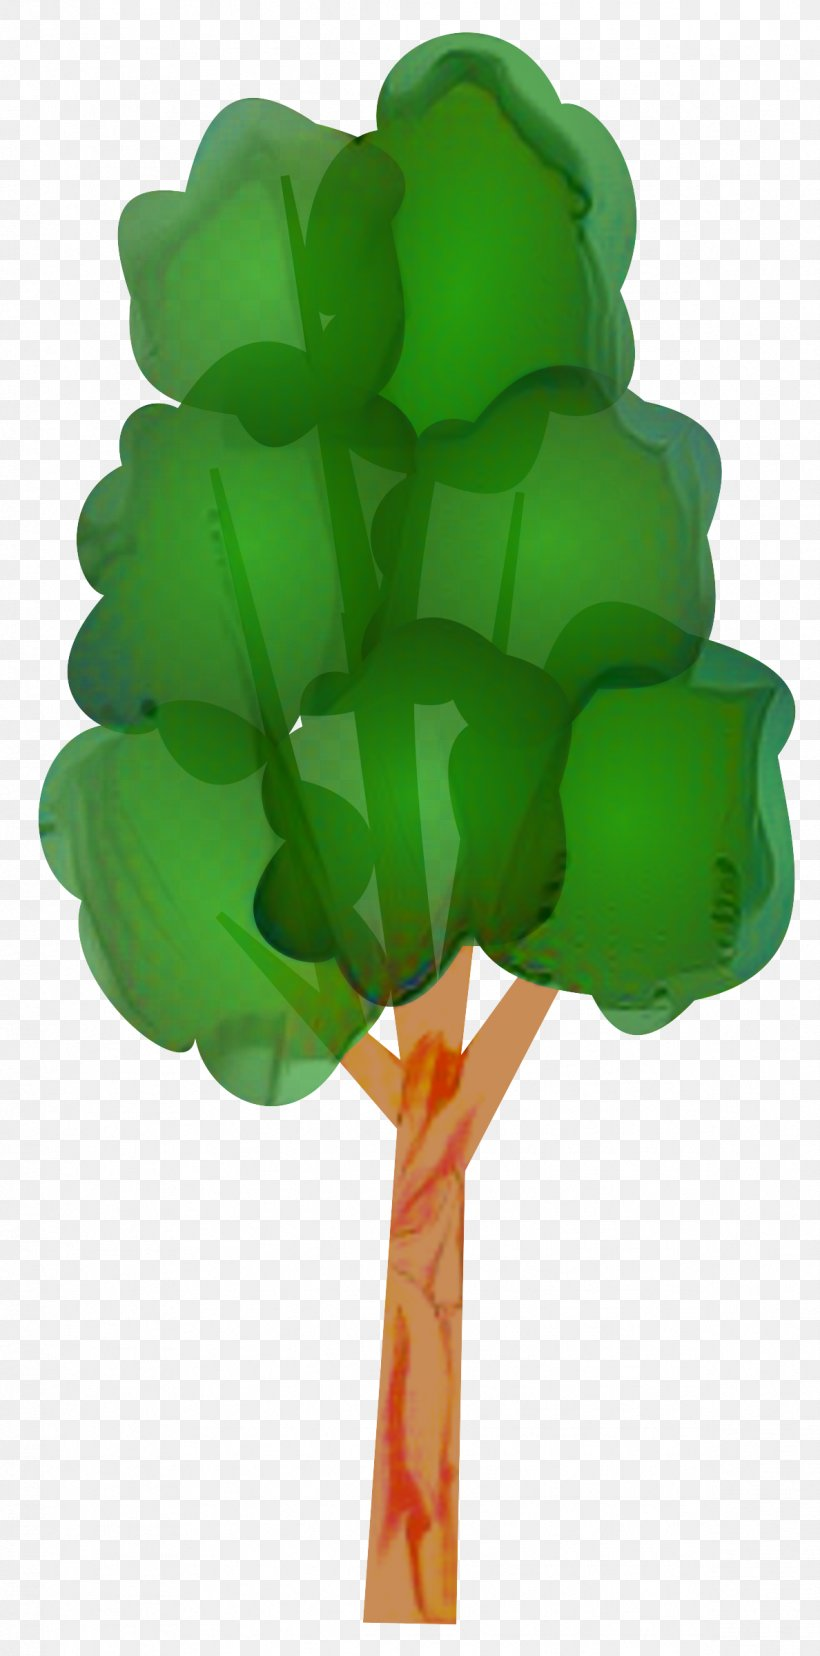 Green Leaf Background, PNG, 1188x2400px, Tree, Candy, Confectionery, Drawing, Green Download Free